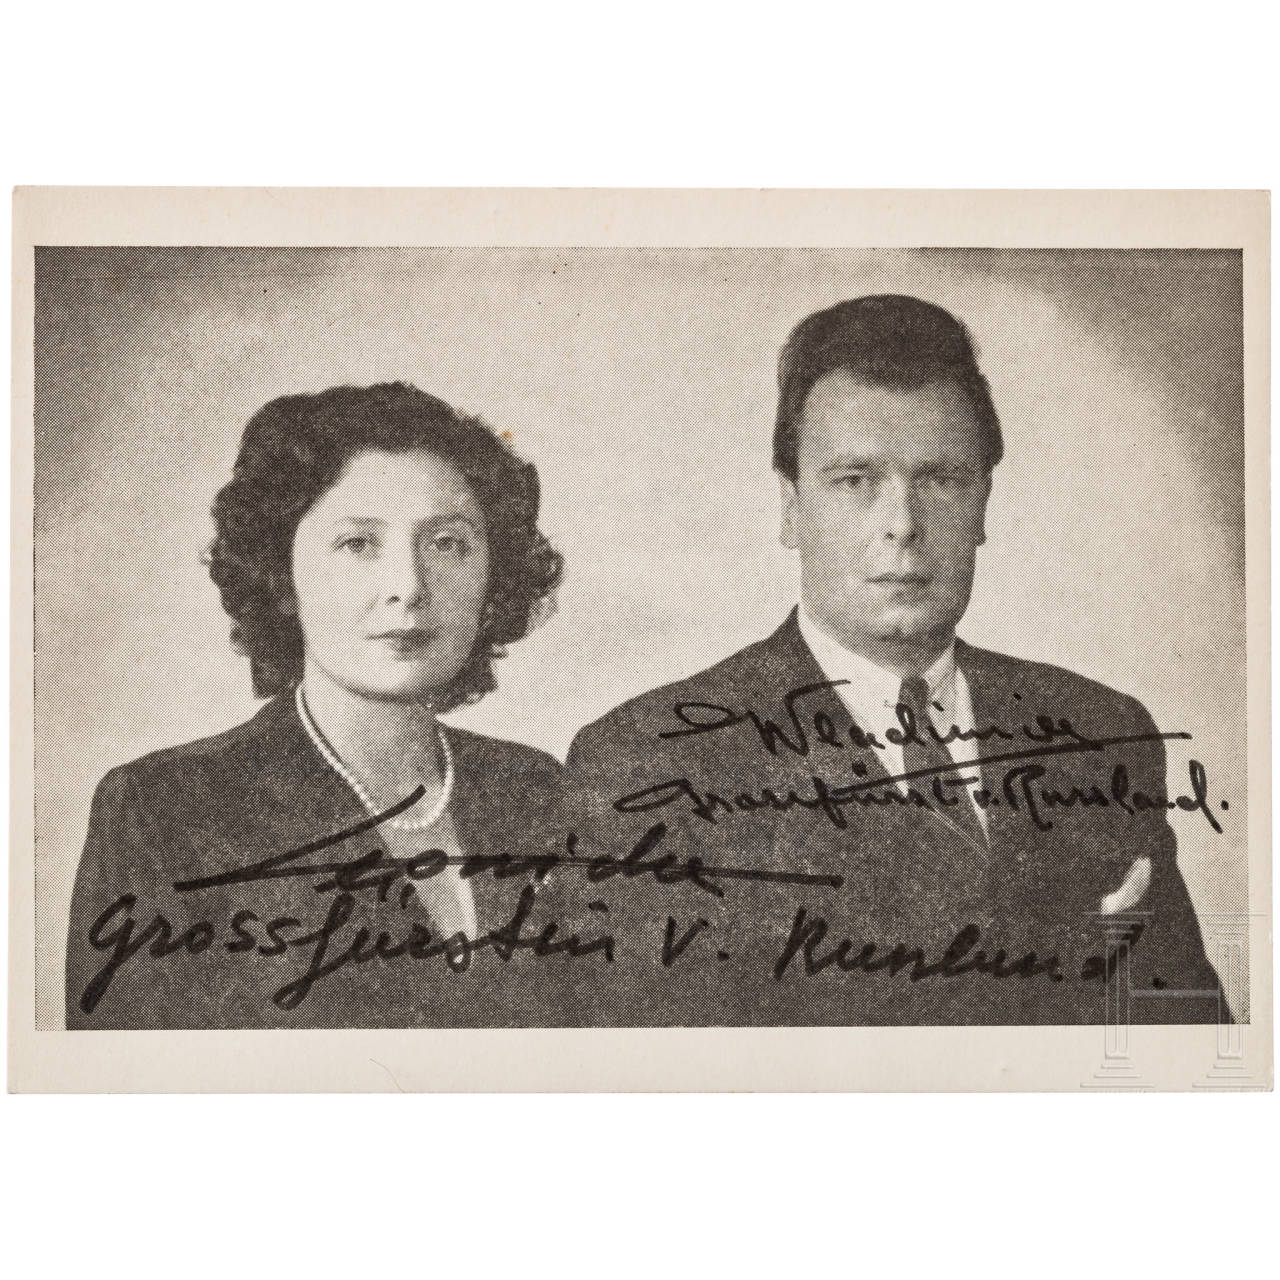 Vladimir Grand Prince of Russia with wife - photo print with autographs